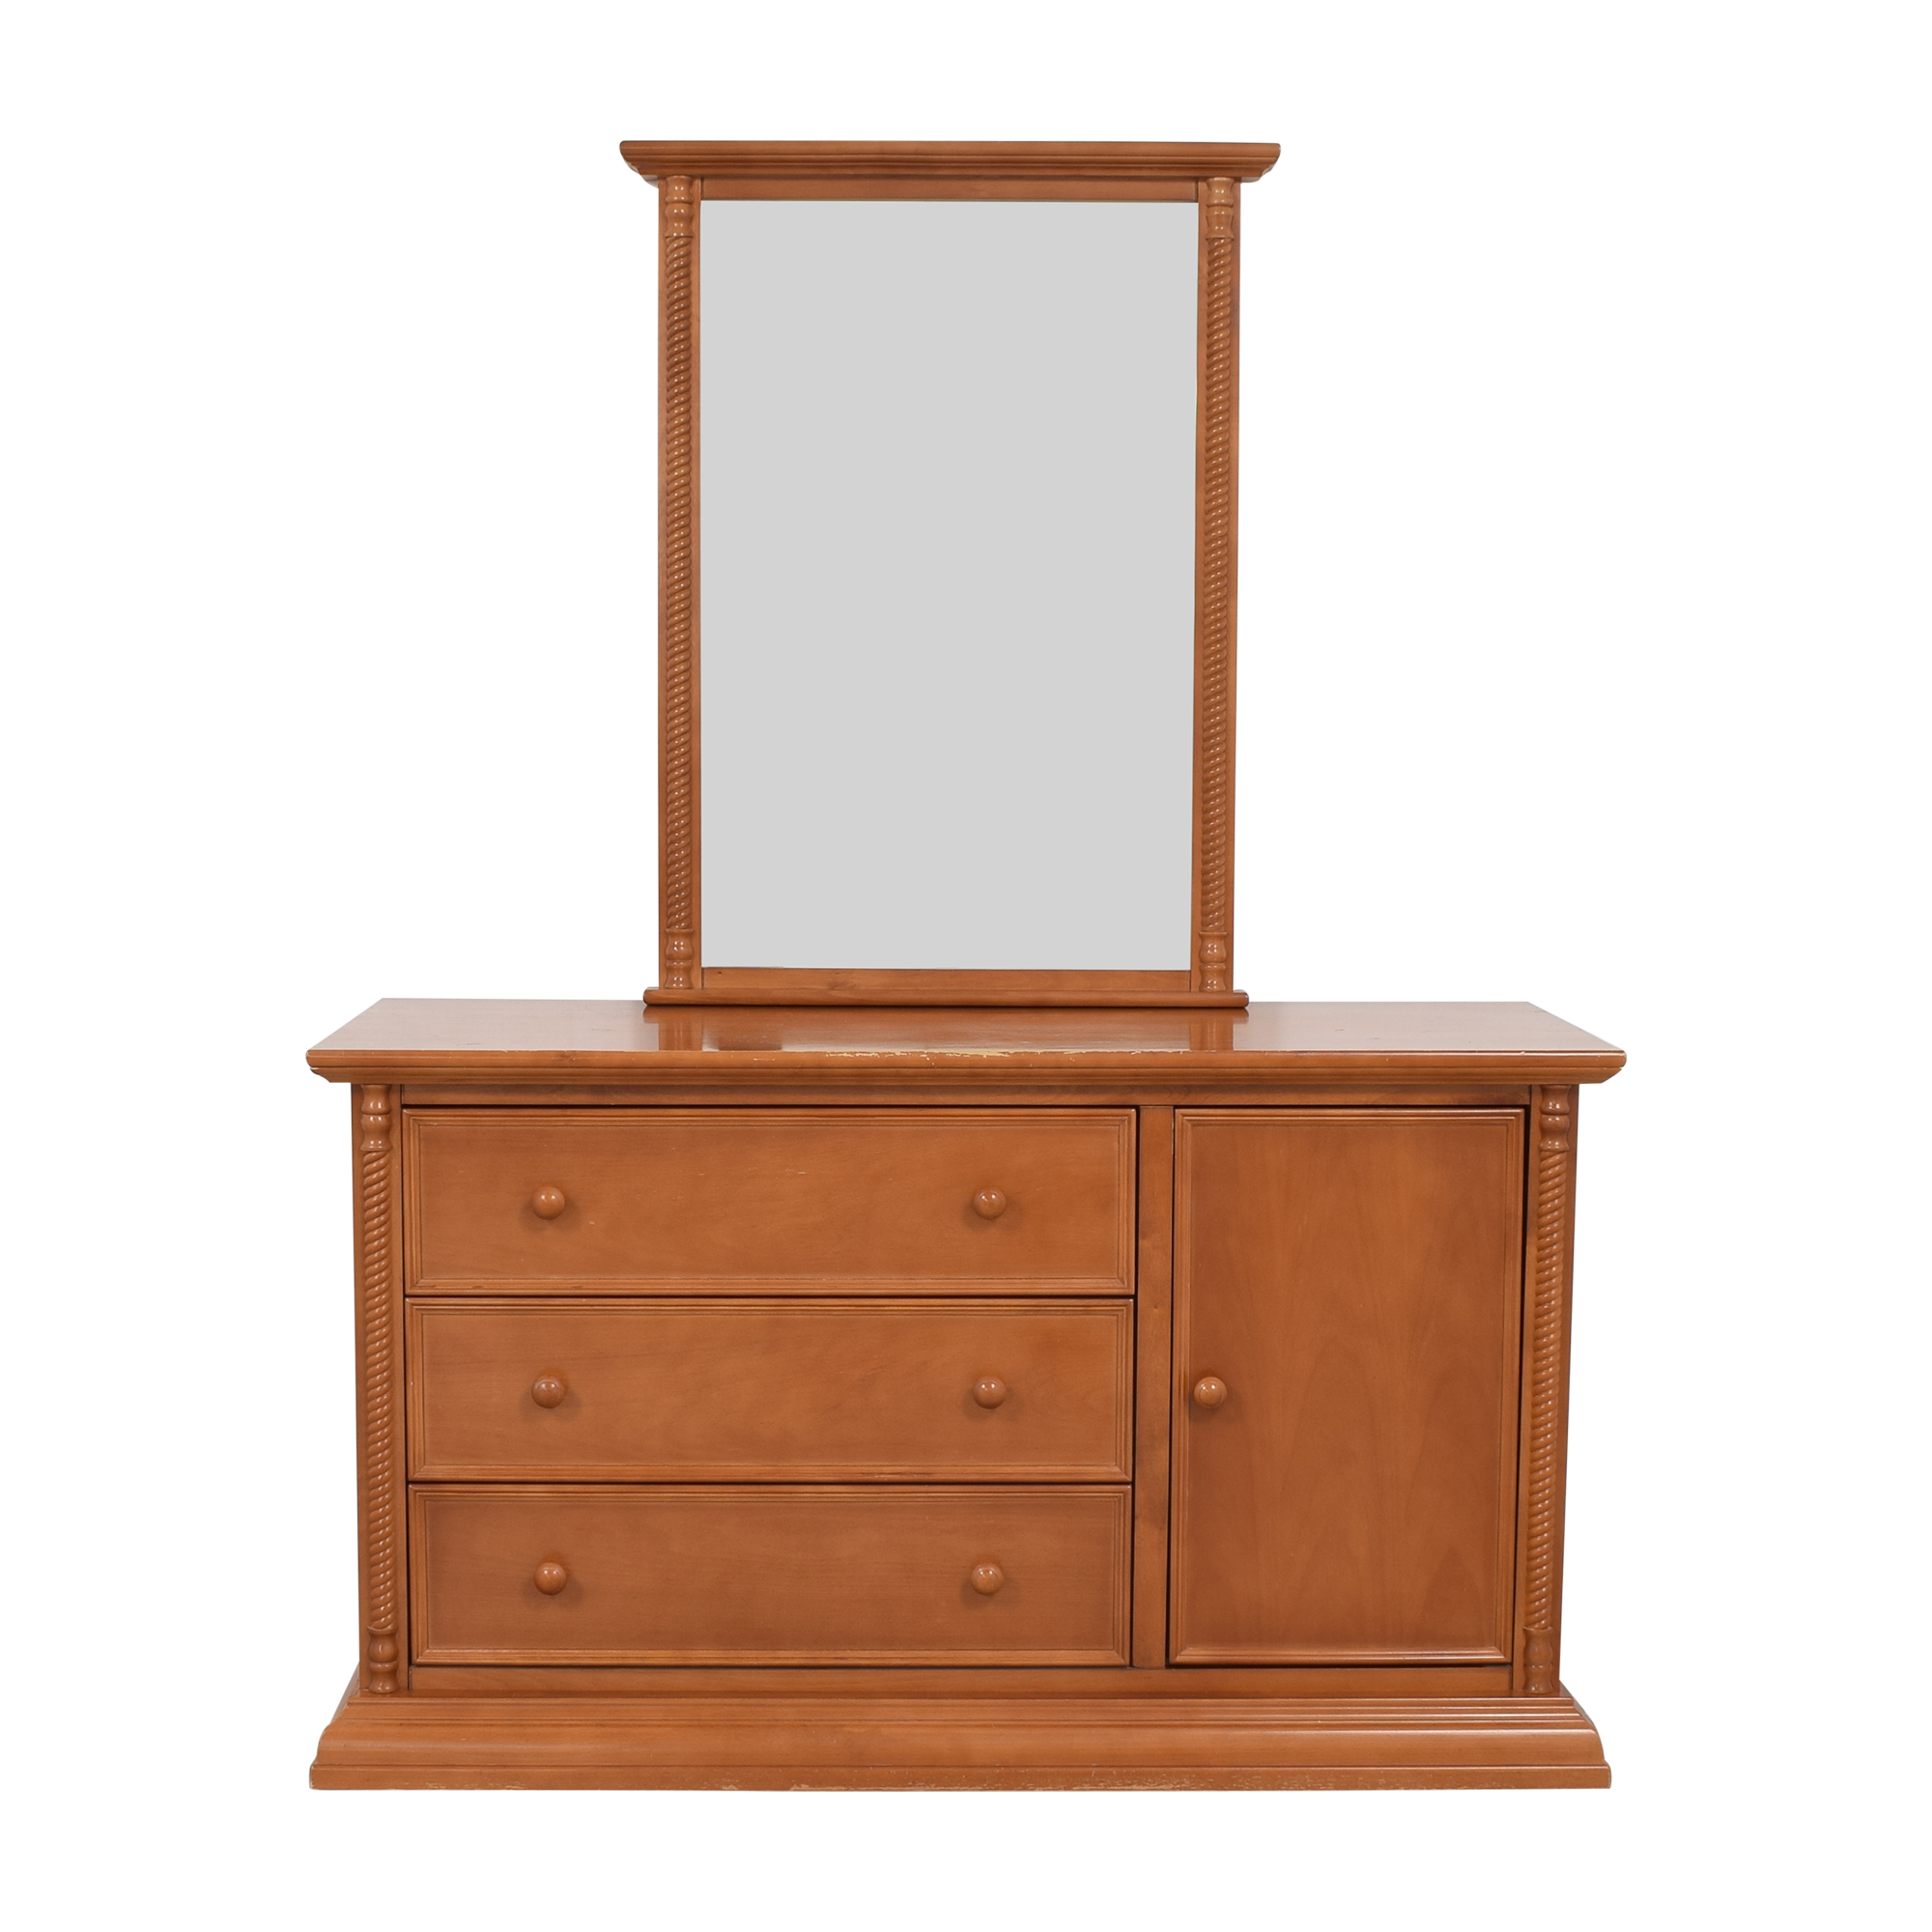 Bellini Bellini Dresser with Mirror price